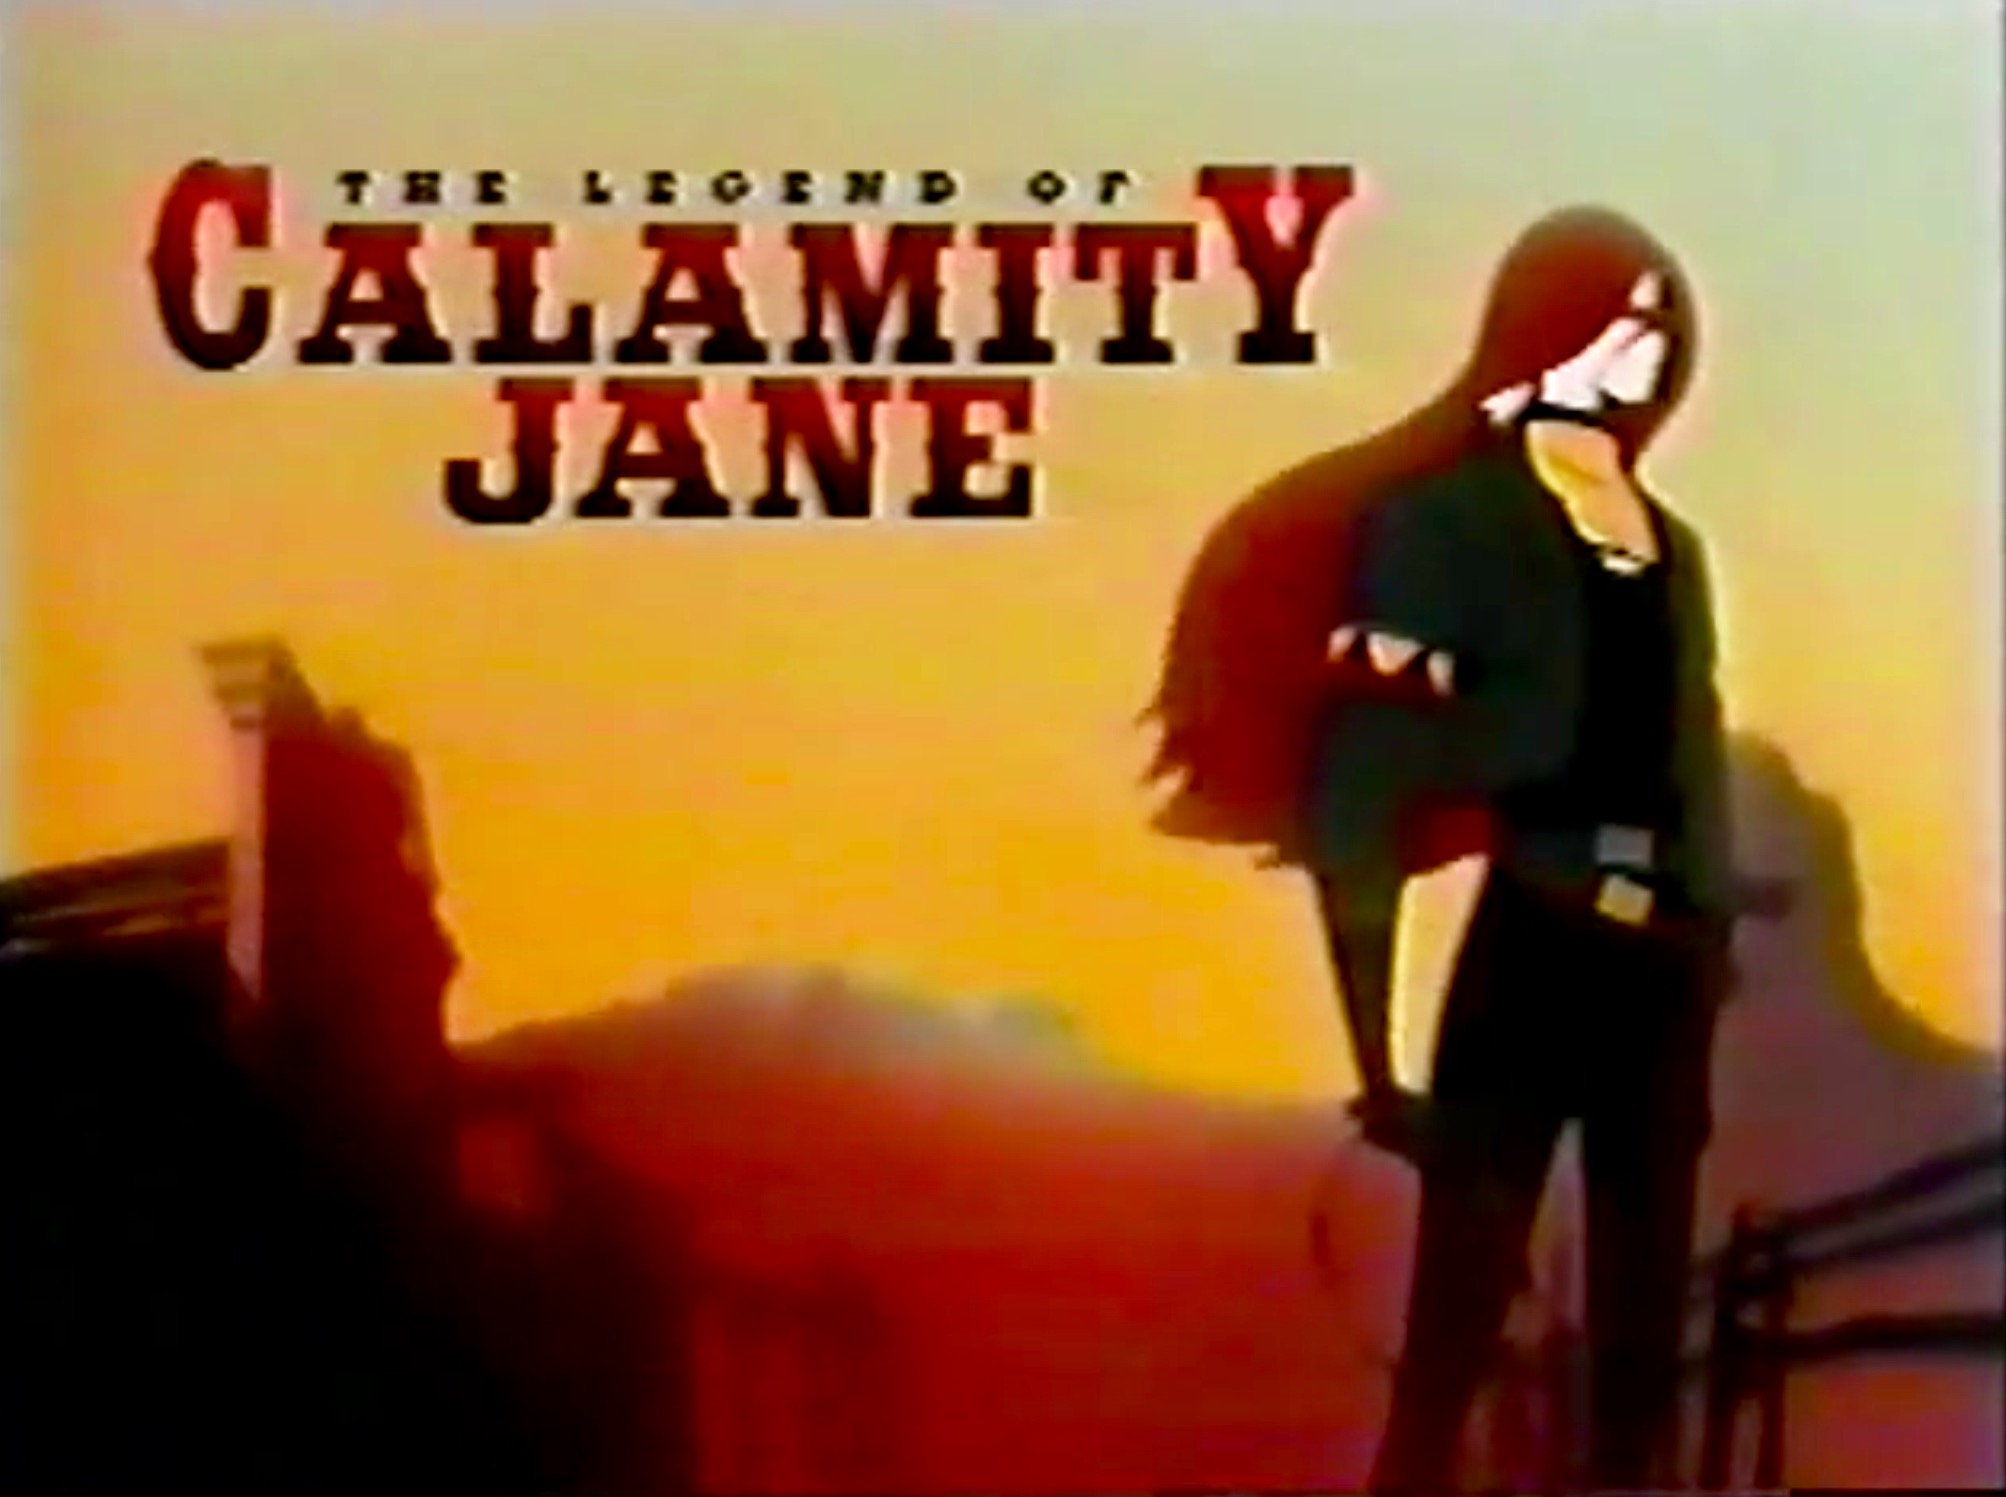 The Legend of Calamity Jane - The Legend of Calamity Jane (partially lost animated series; 1997-1998)